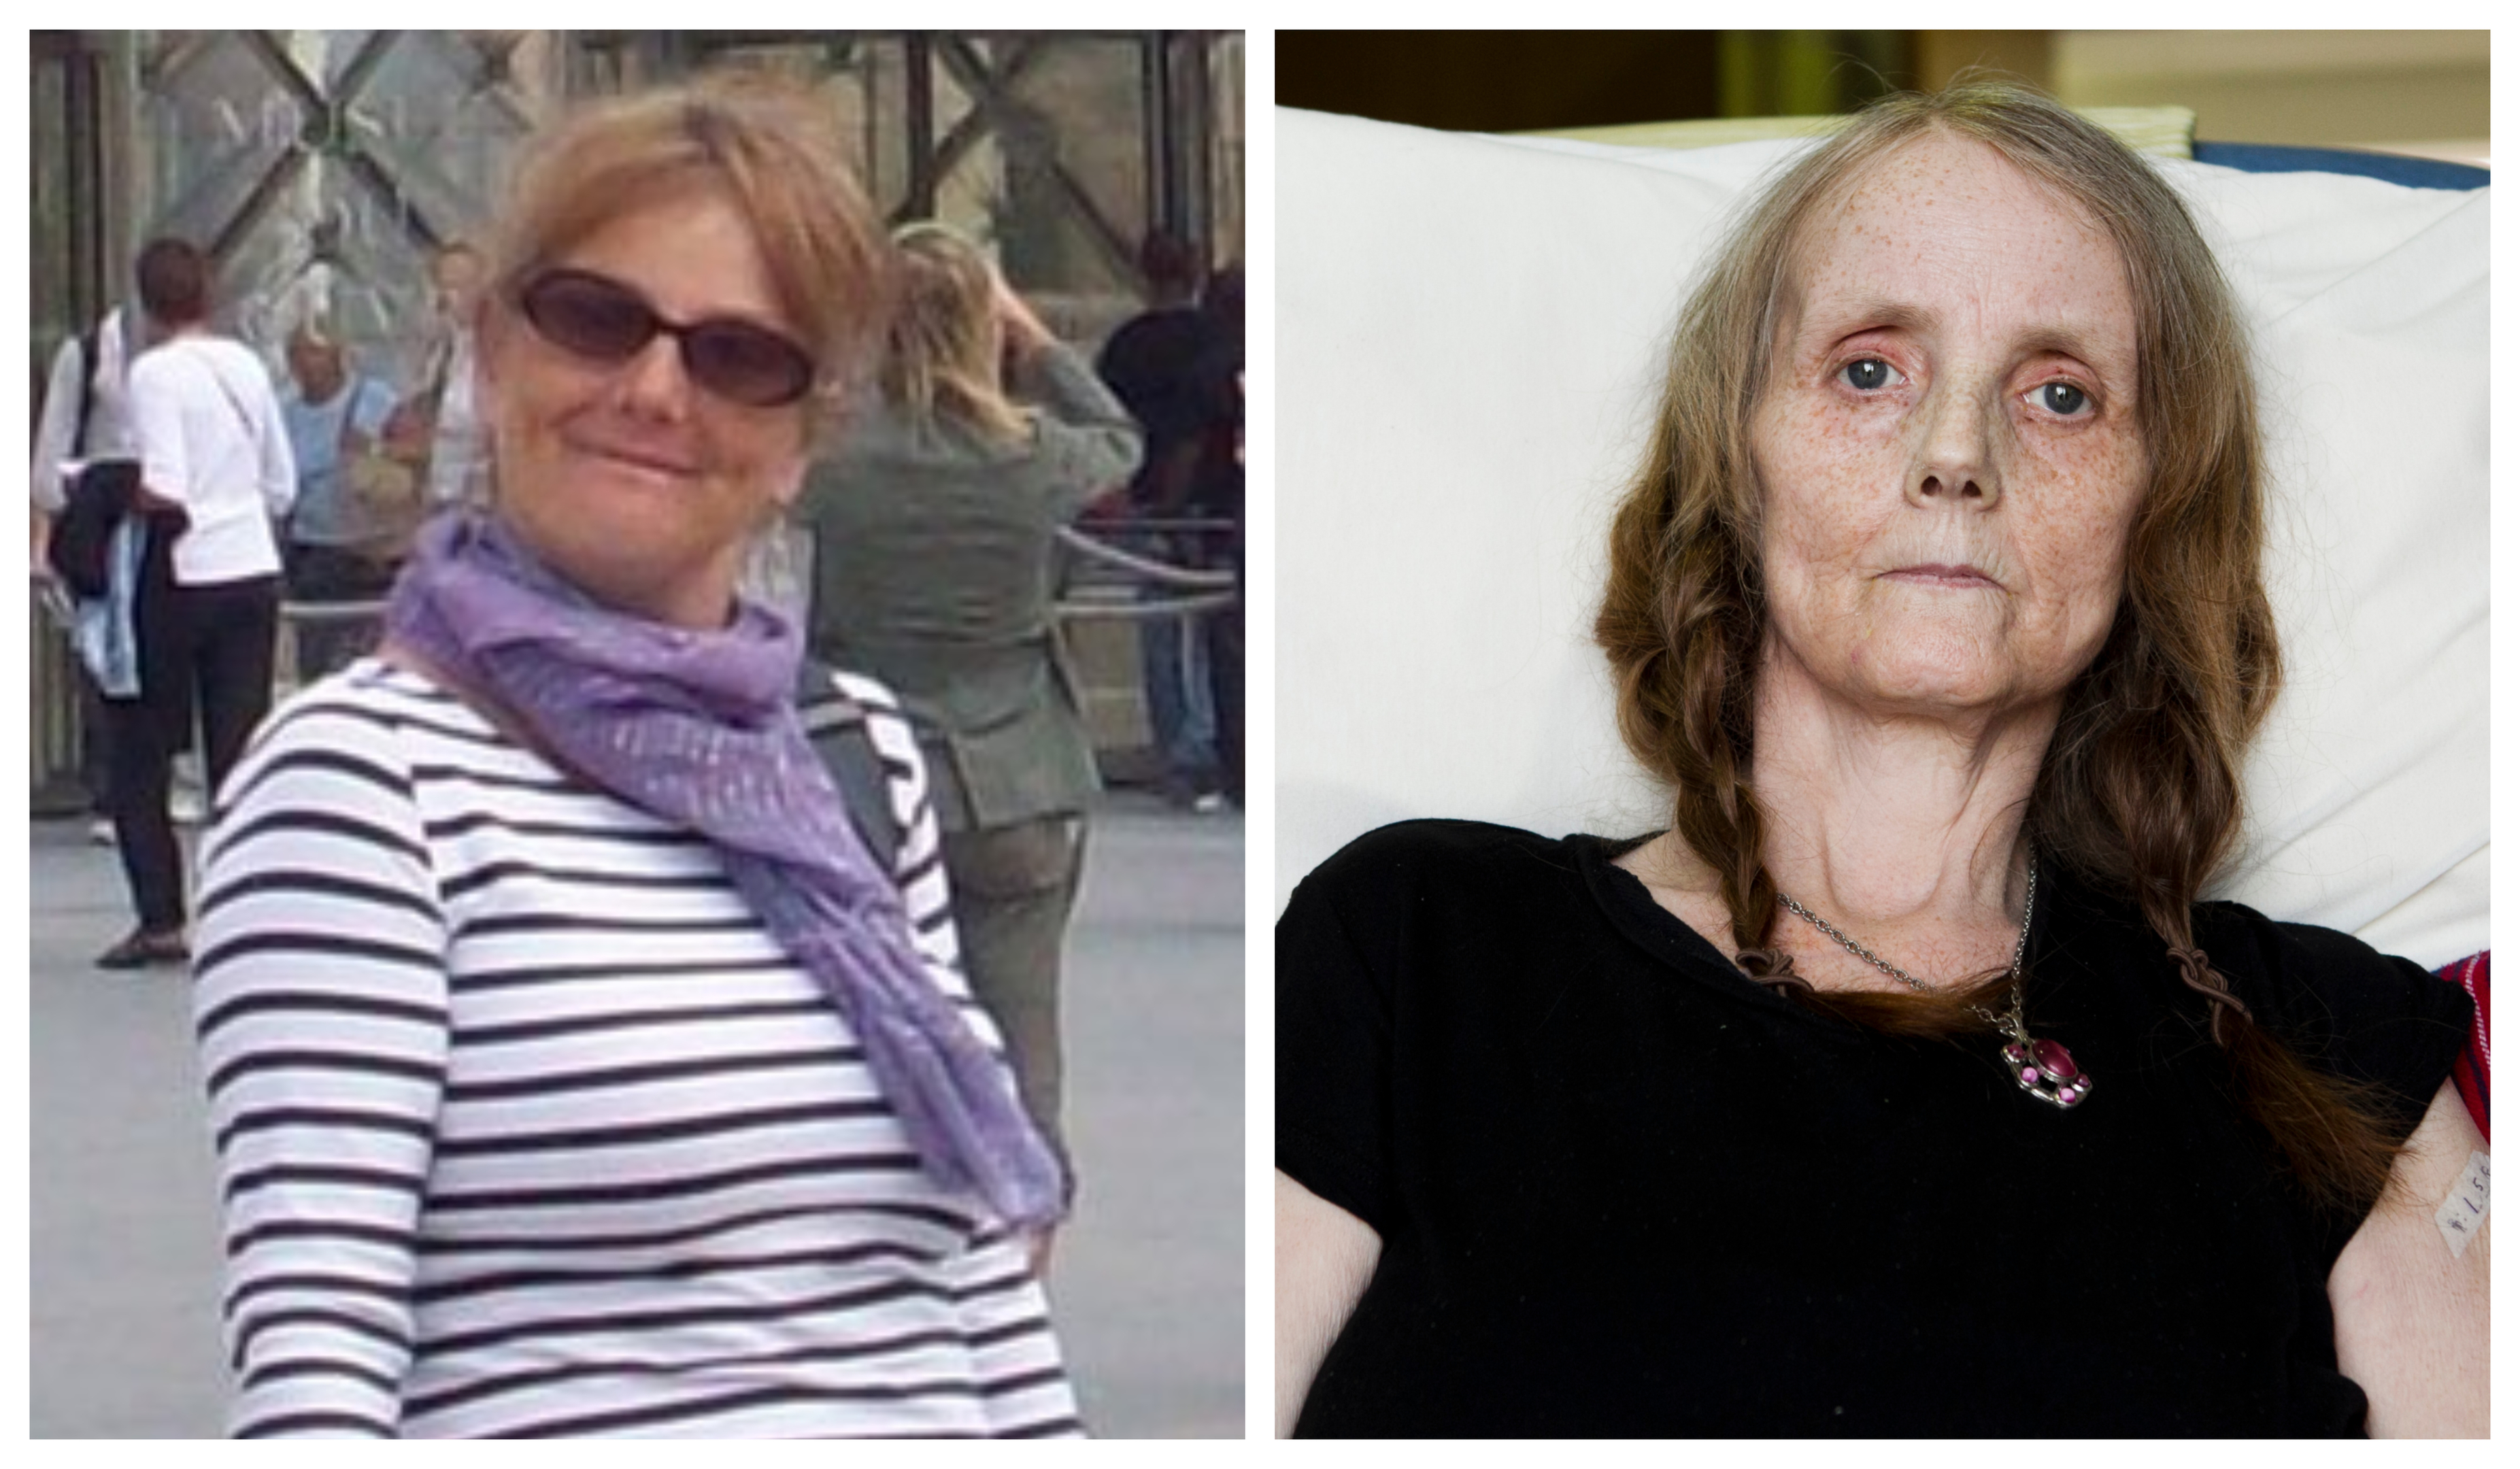 Michelle McDougall on a trip to Paris in 2008 before her diagnosis with a rare cancer (left) and last week in a hospice